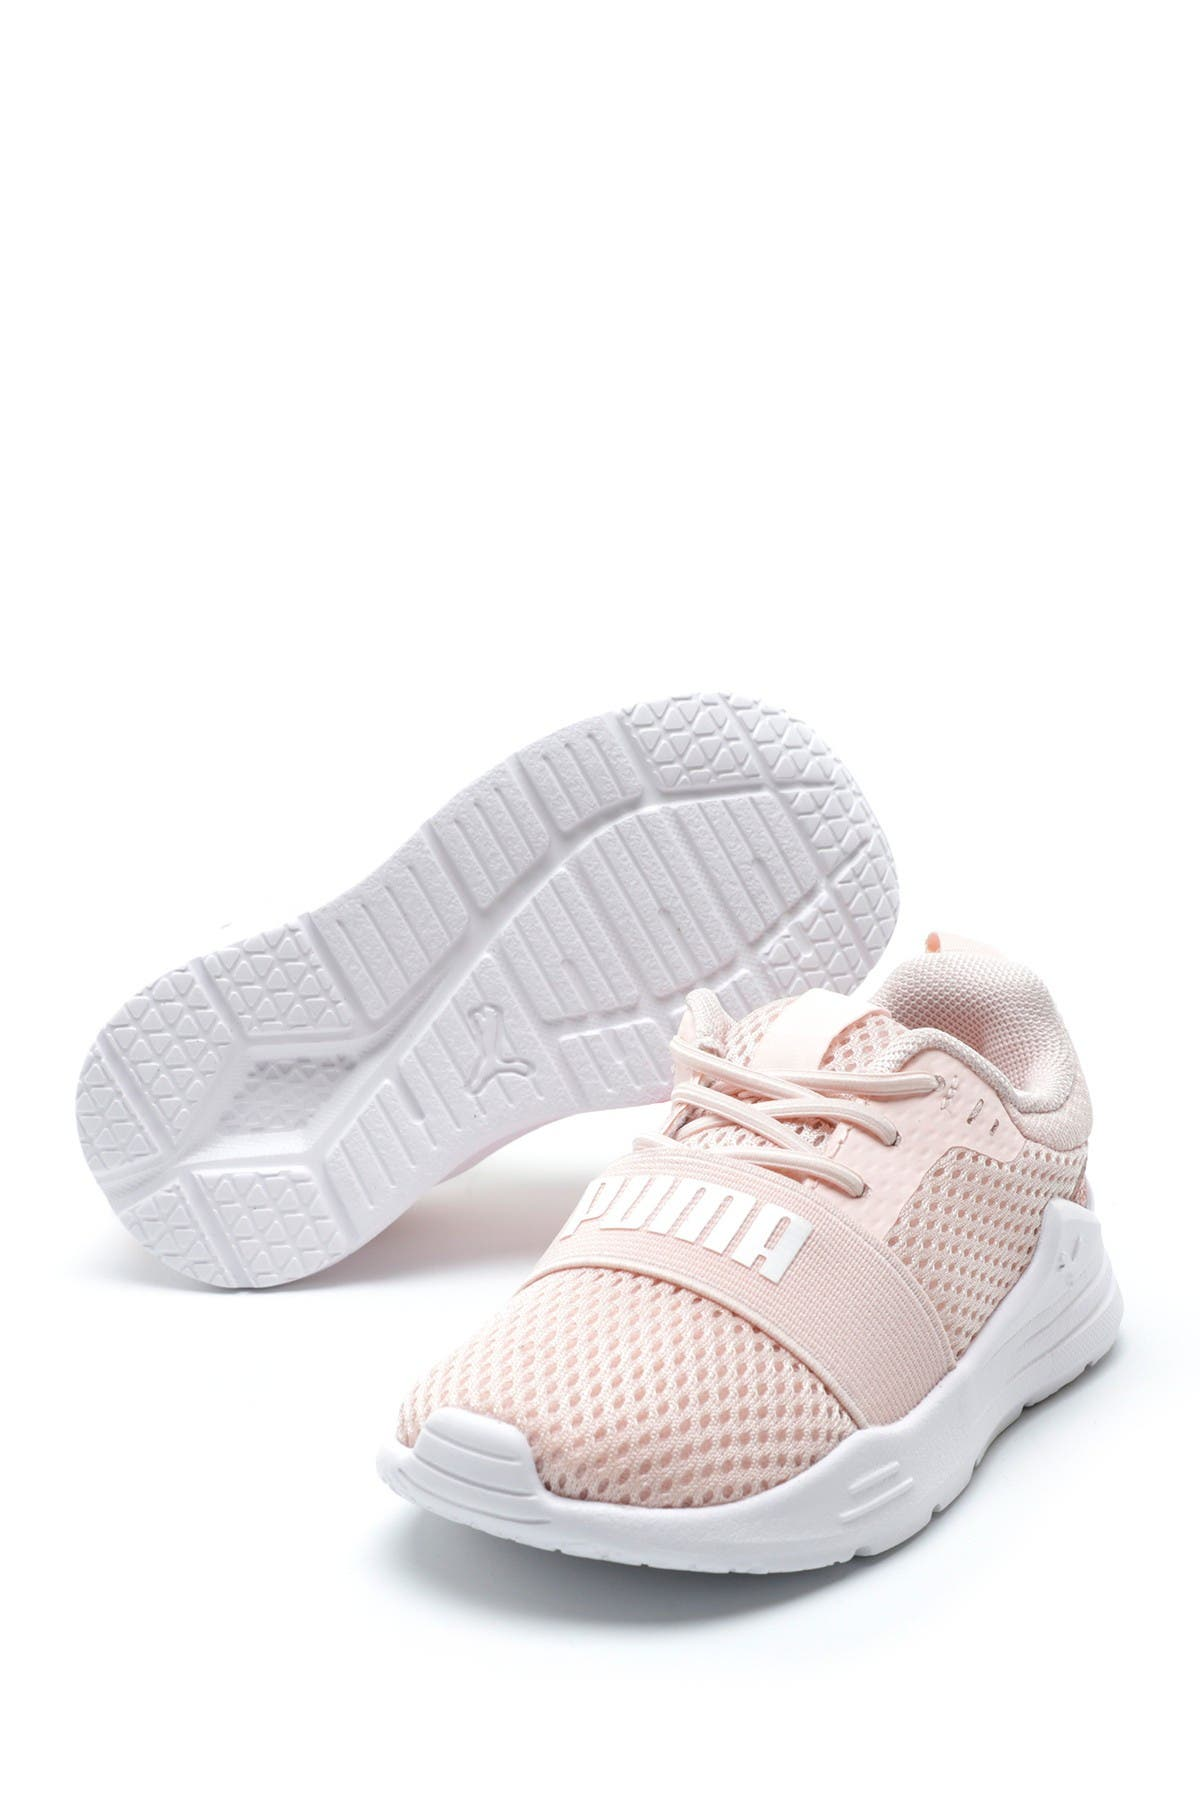 Image of PUMA Wired Run Glitz Sneaker